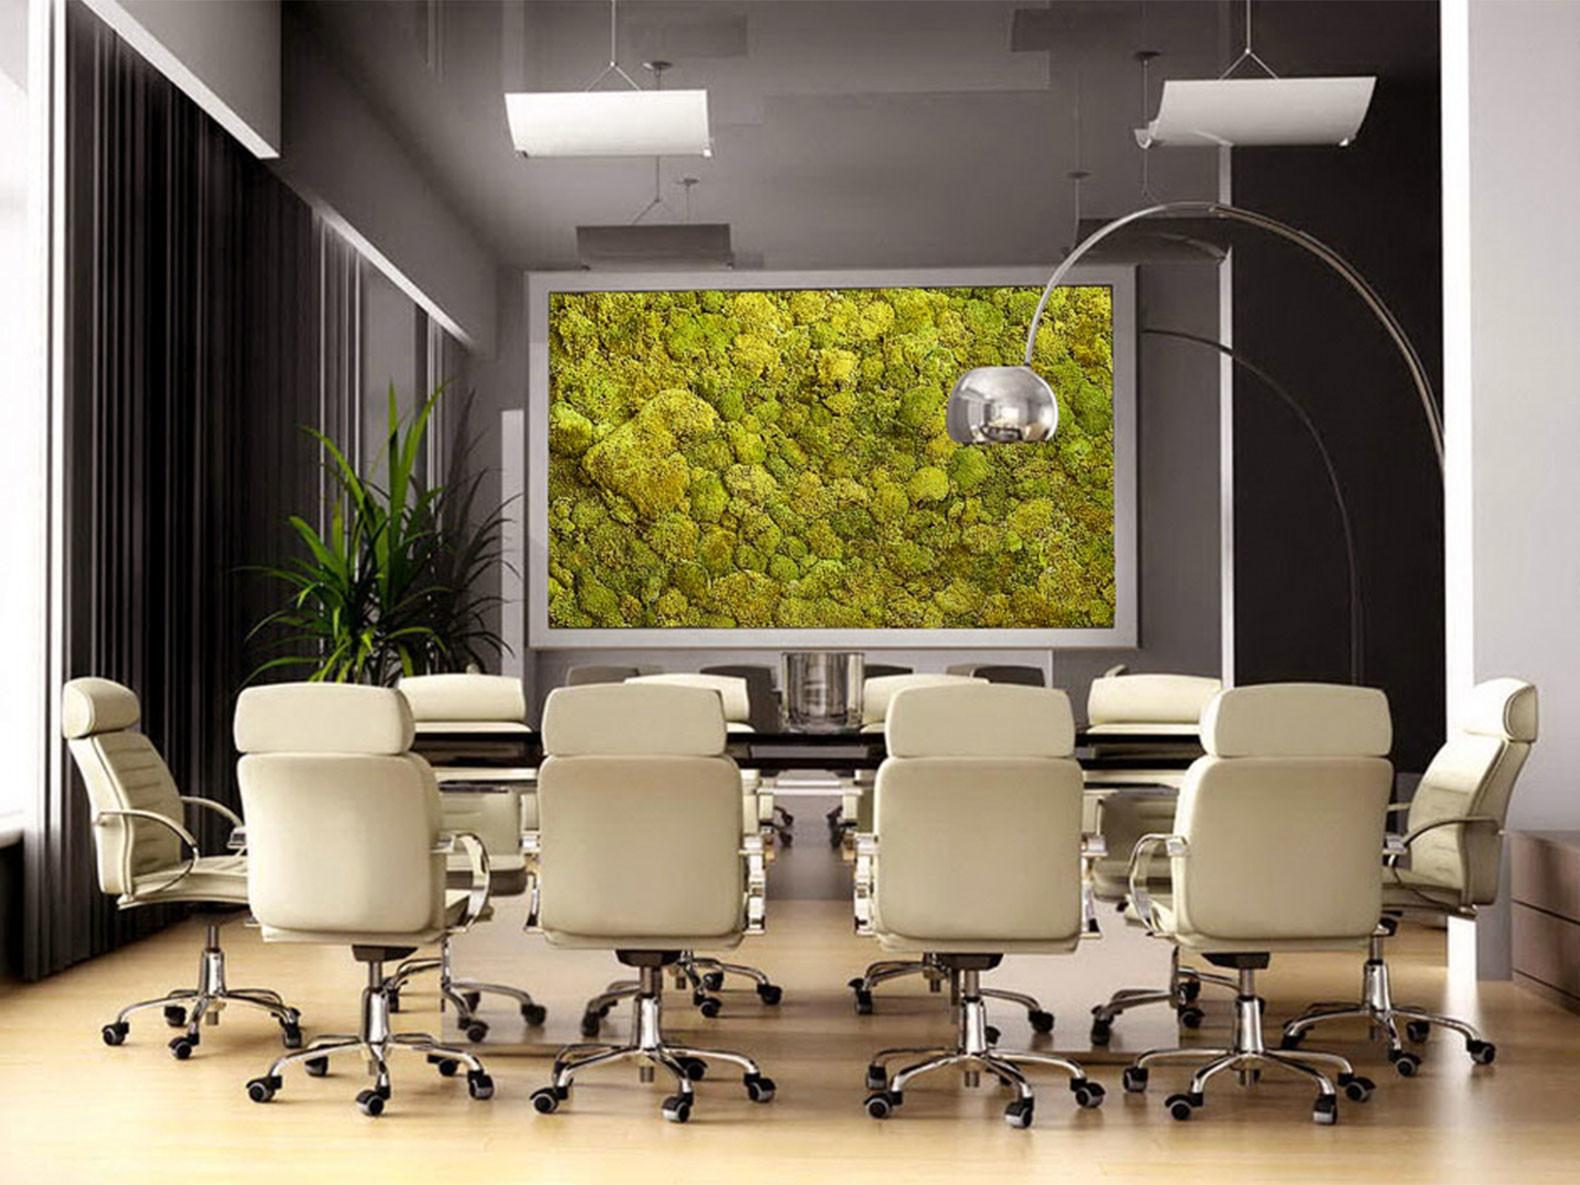 Moss Walls Newest Trend Biophilic Interiors